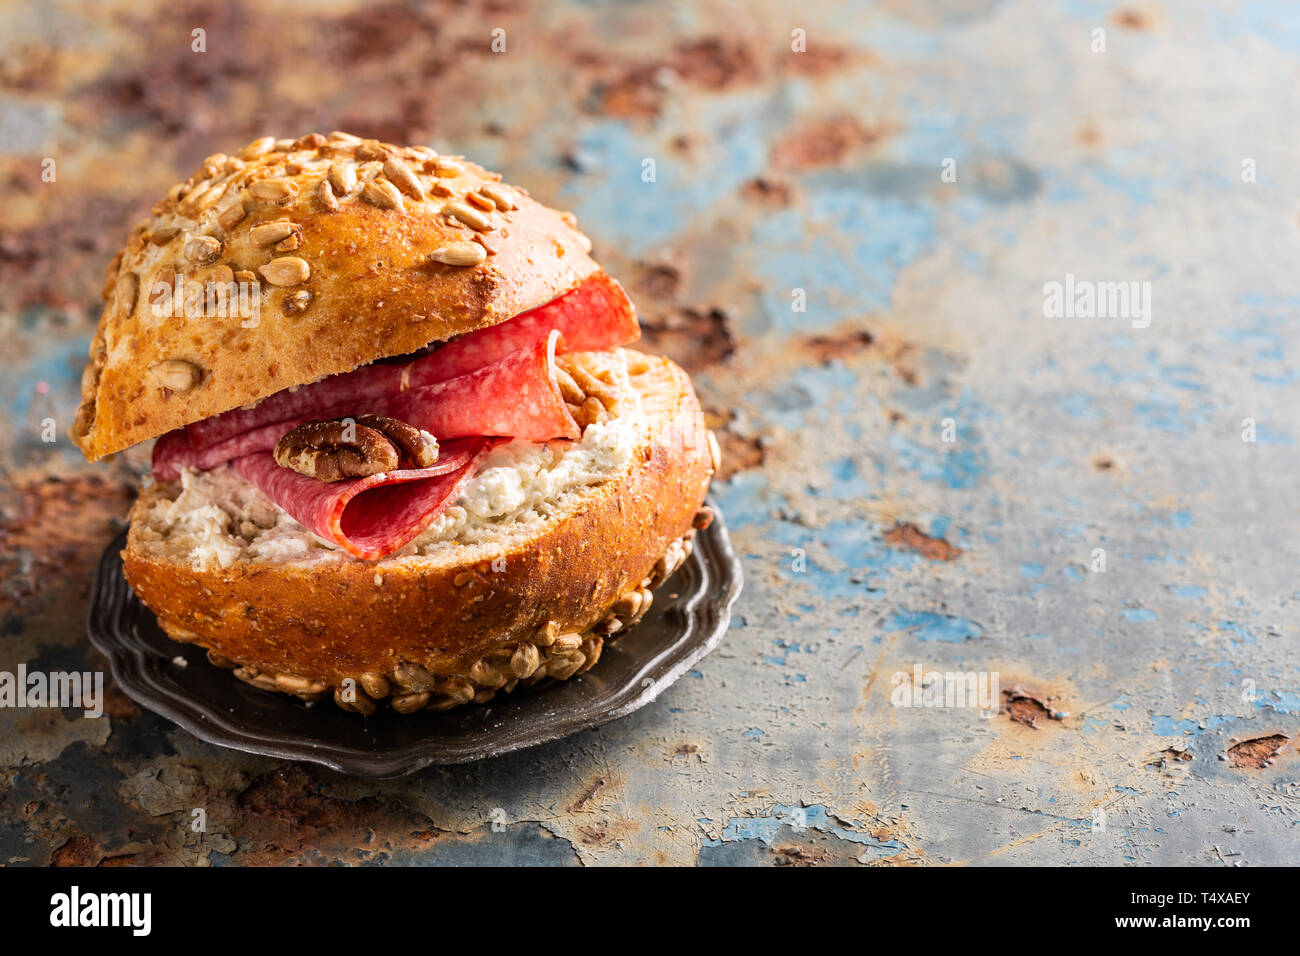 Sandwiche with salami and walnut, multigrain bun. Healthy lunch concept with copy space - Stock Image